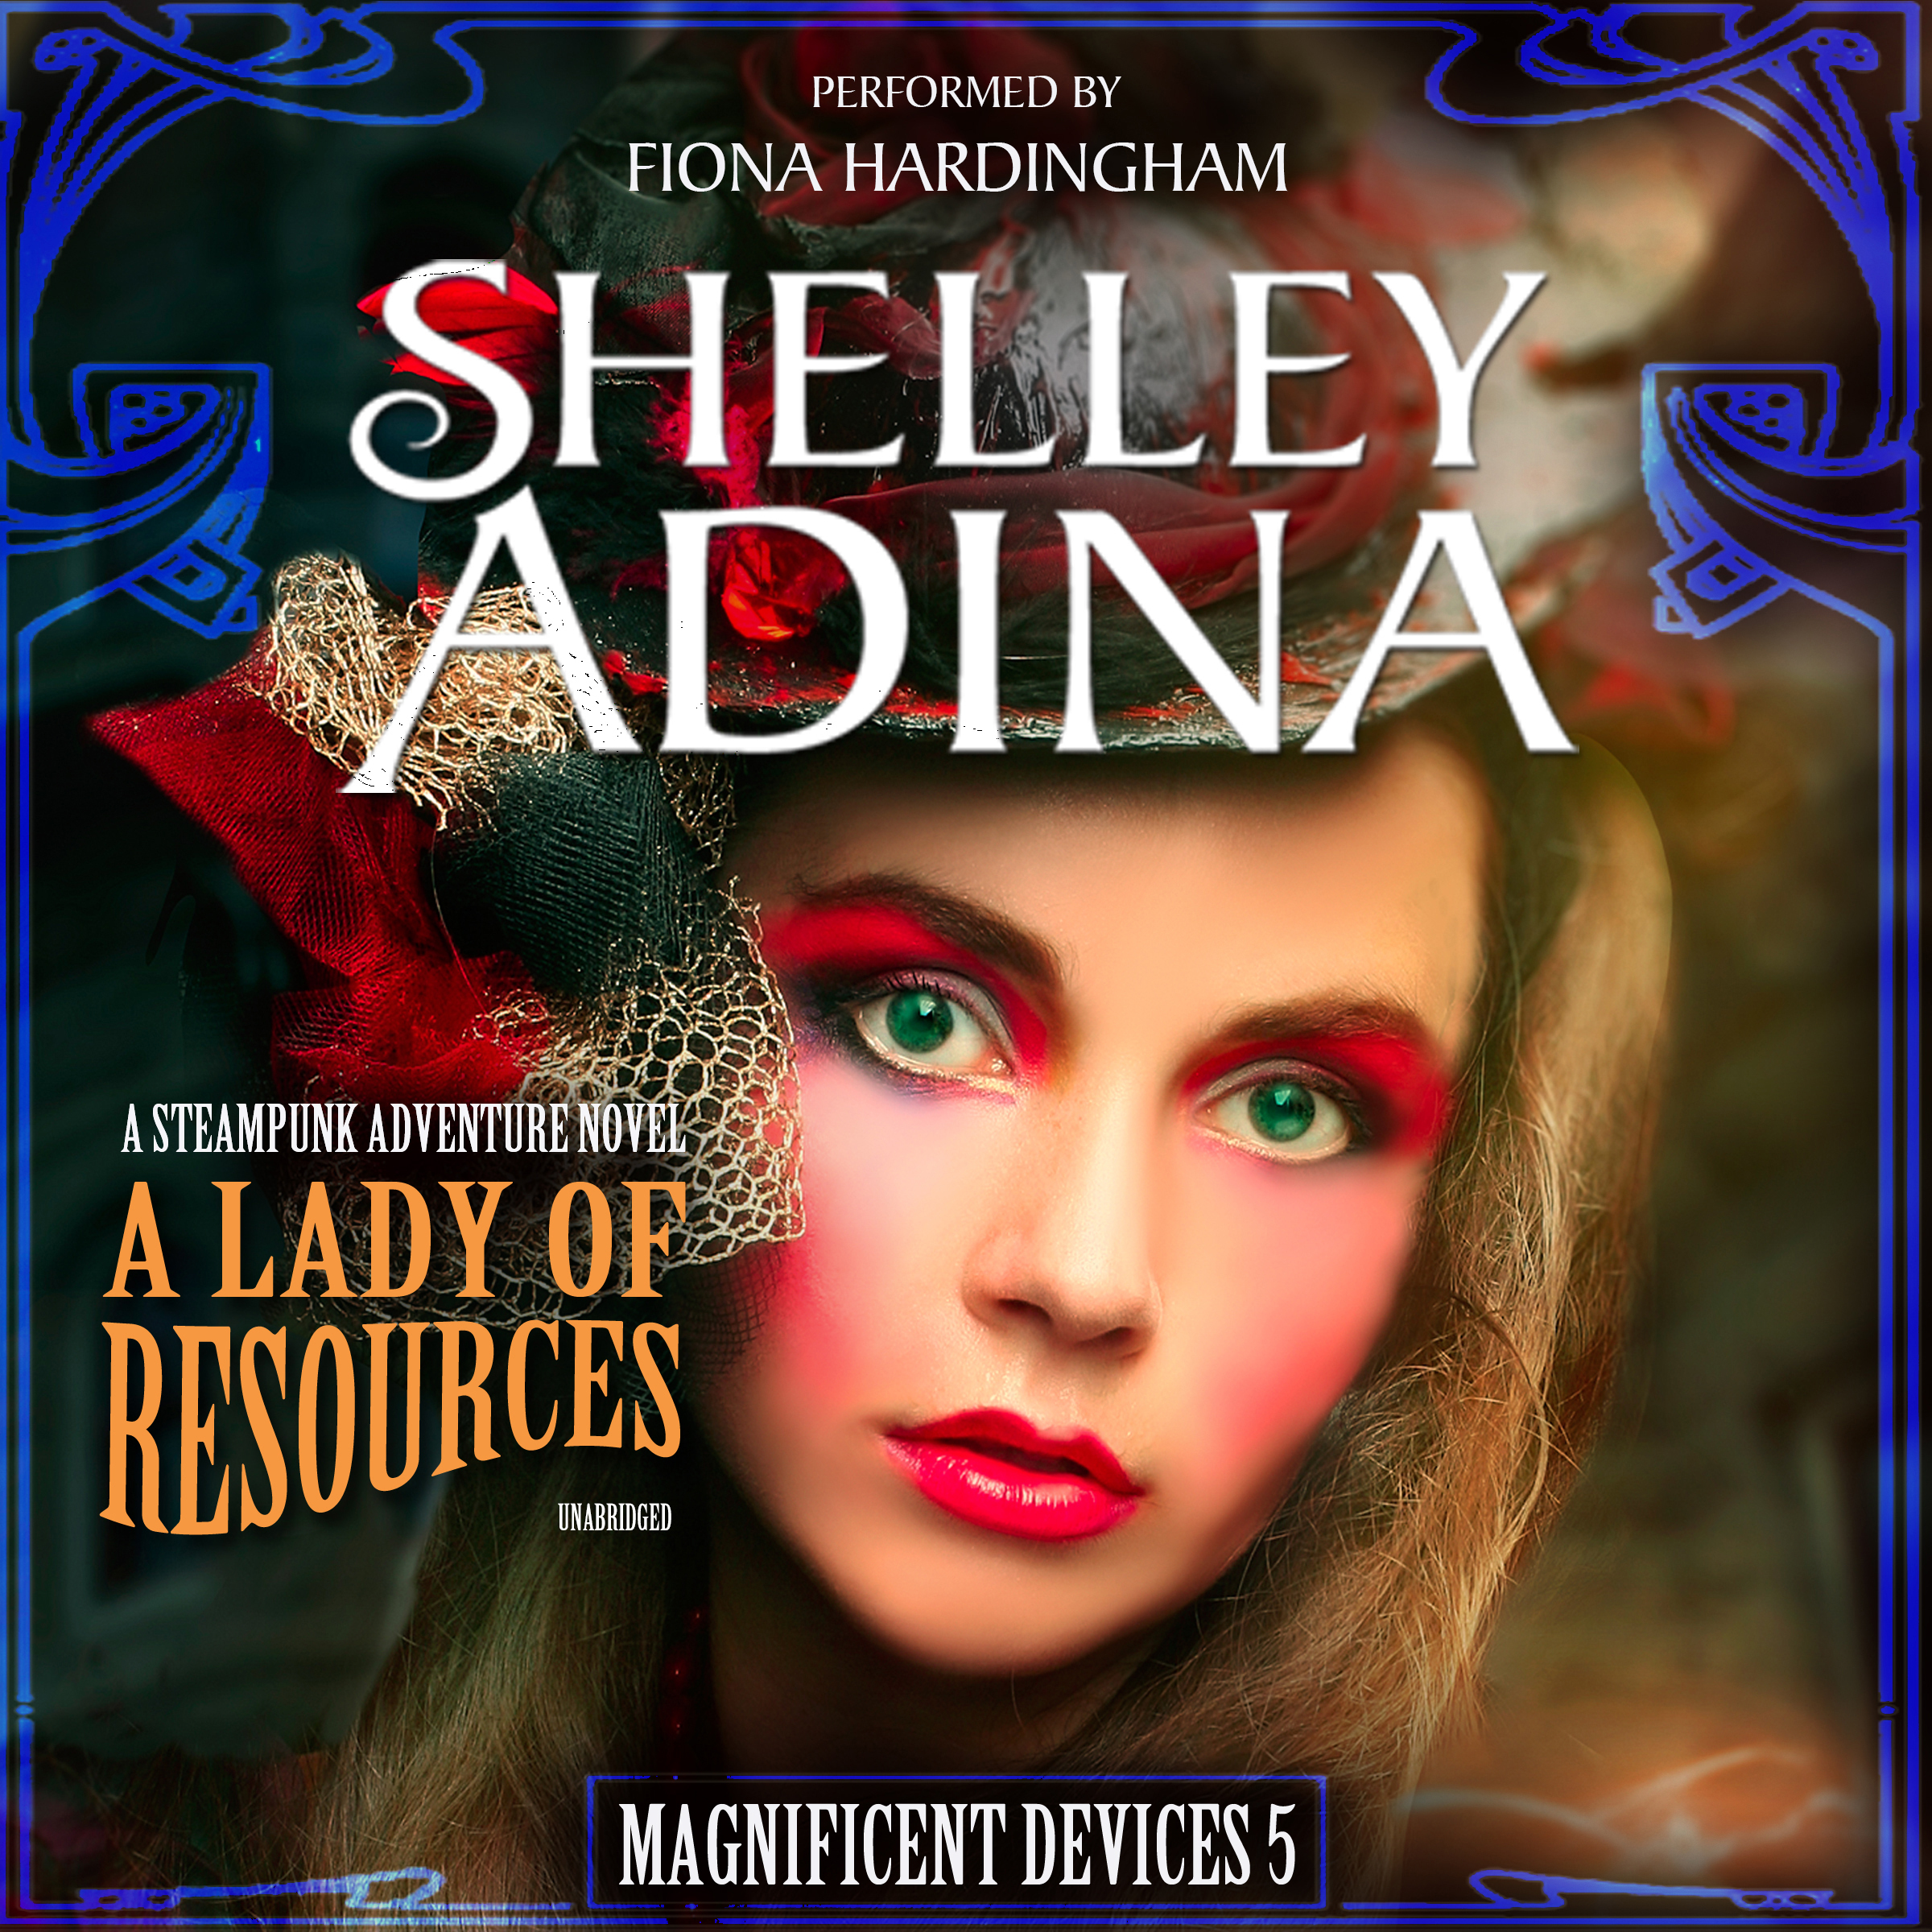 Printable A Lady of Resources: A Steampunk Adventure Novel Audiobook Cover Art